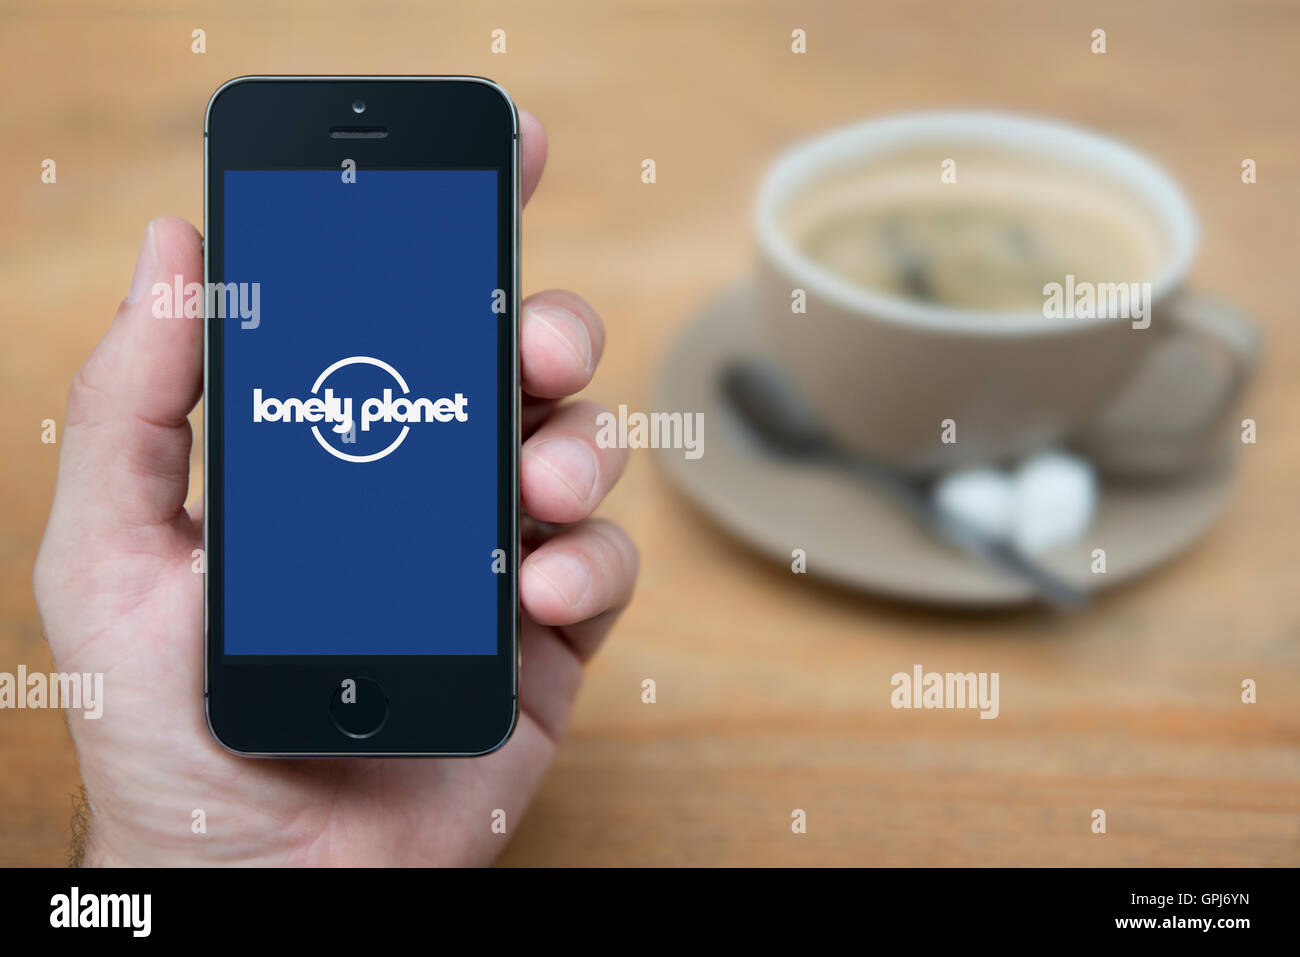 A man looks at his iPhone which displays the Lonely Planet logo, while sat with a cup of coffee (Editorial use only). - Stock Image